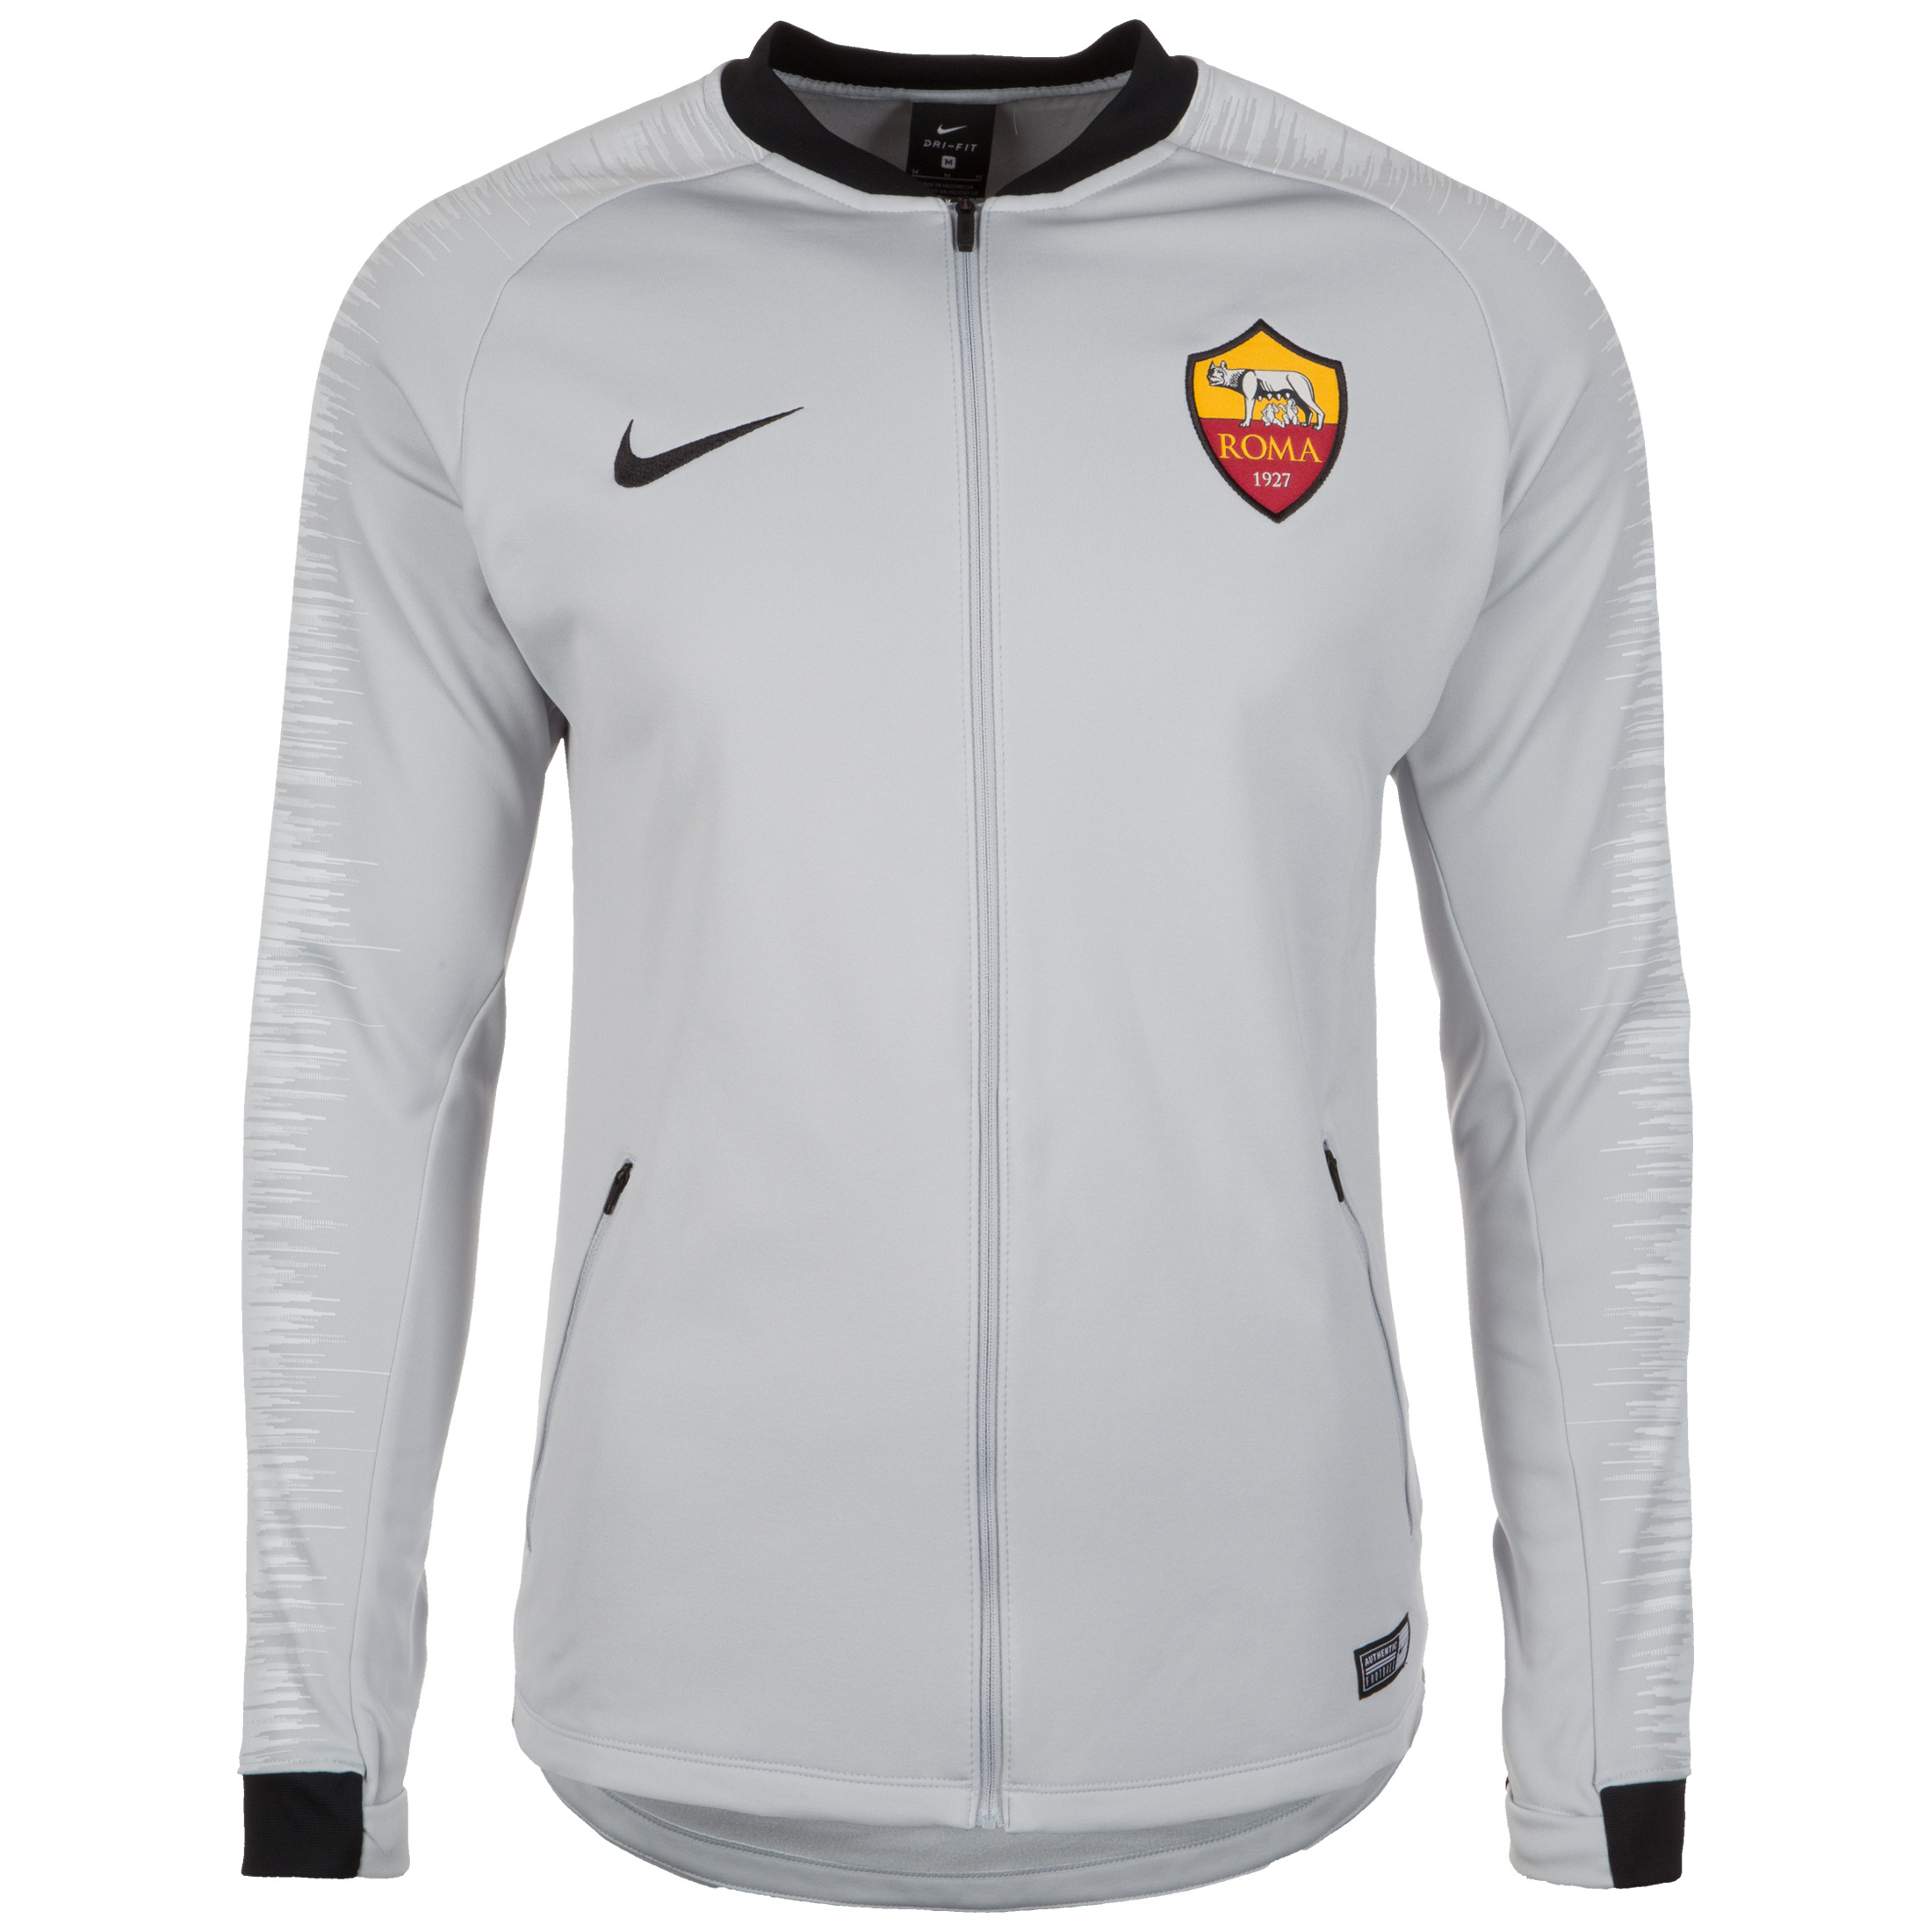 check out 5811d 3be5a Nike A.S. Roma Anthem Men's Football Jacket - Grey